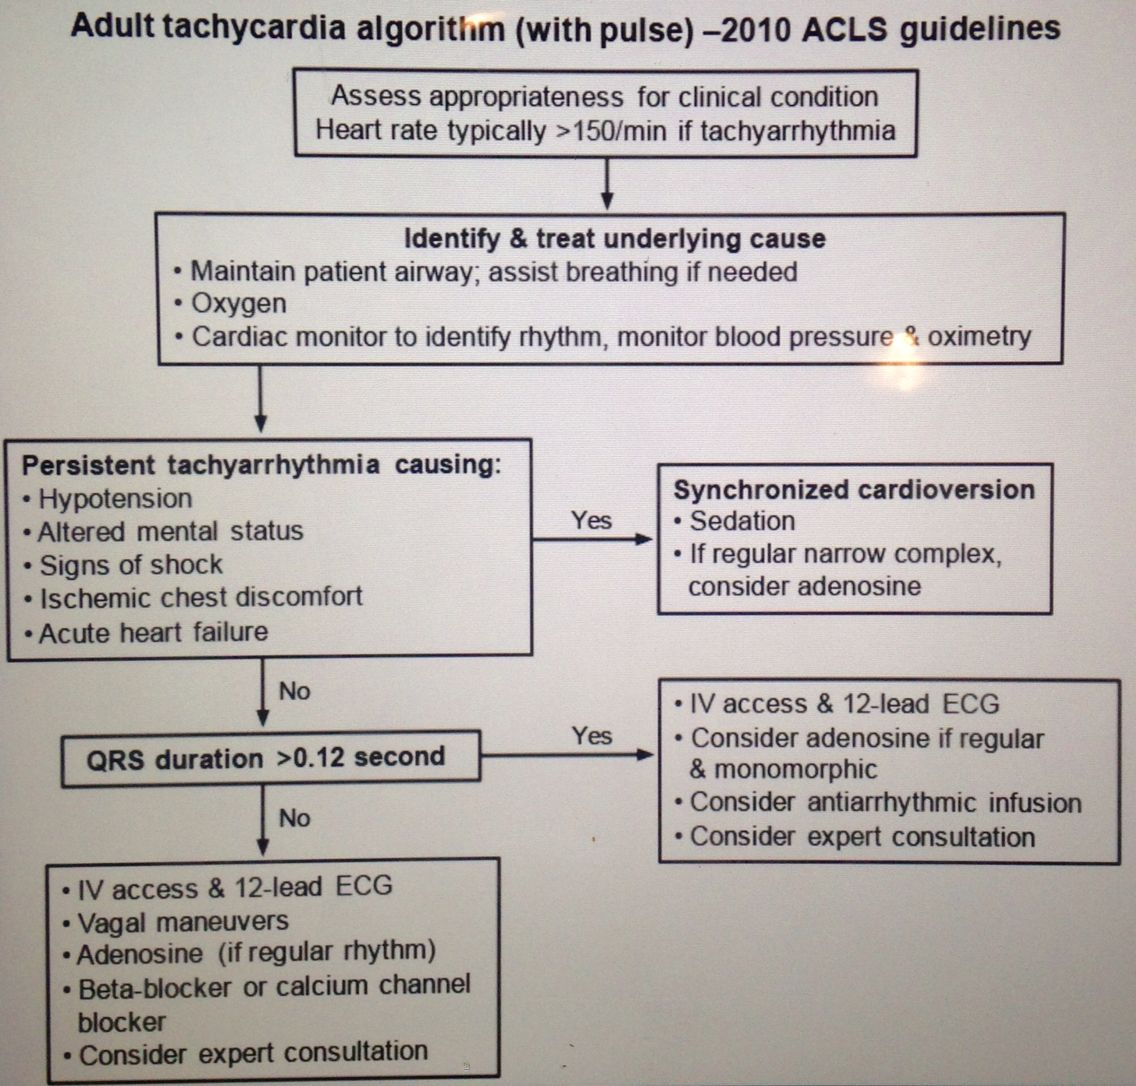 Acls Management Of Tachycardia This Applies To Patients With